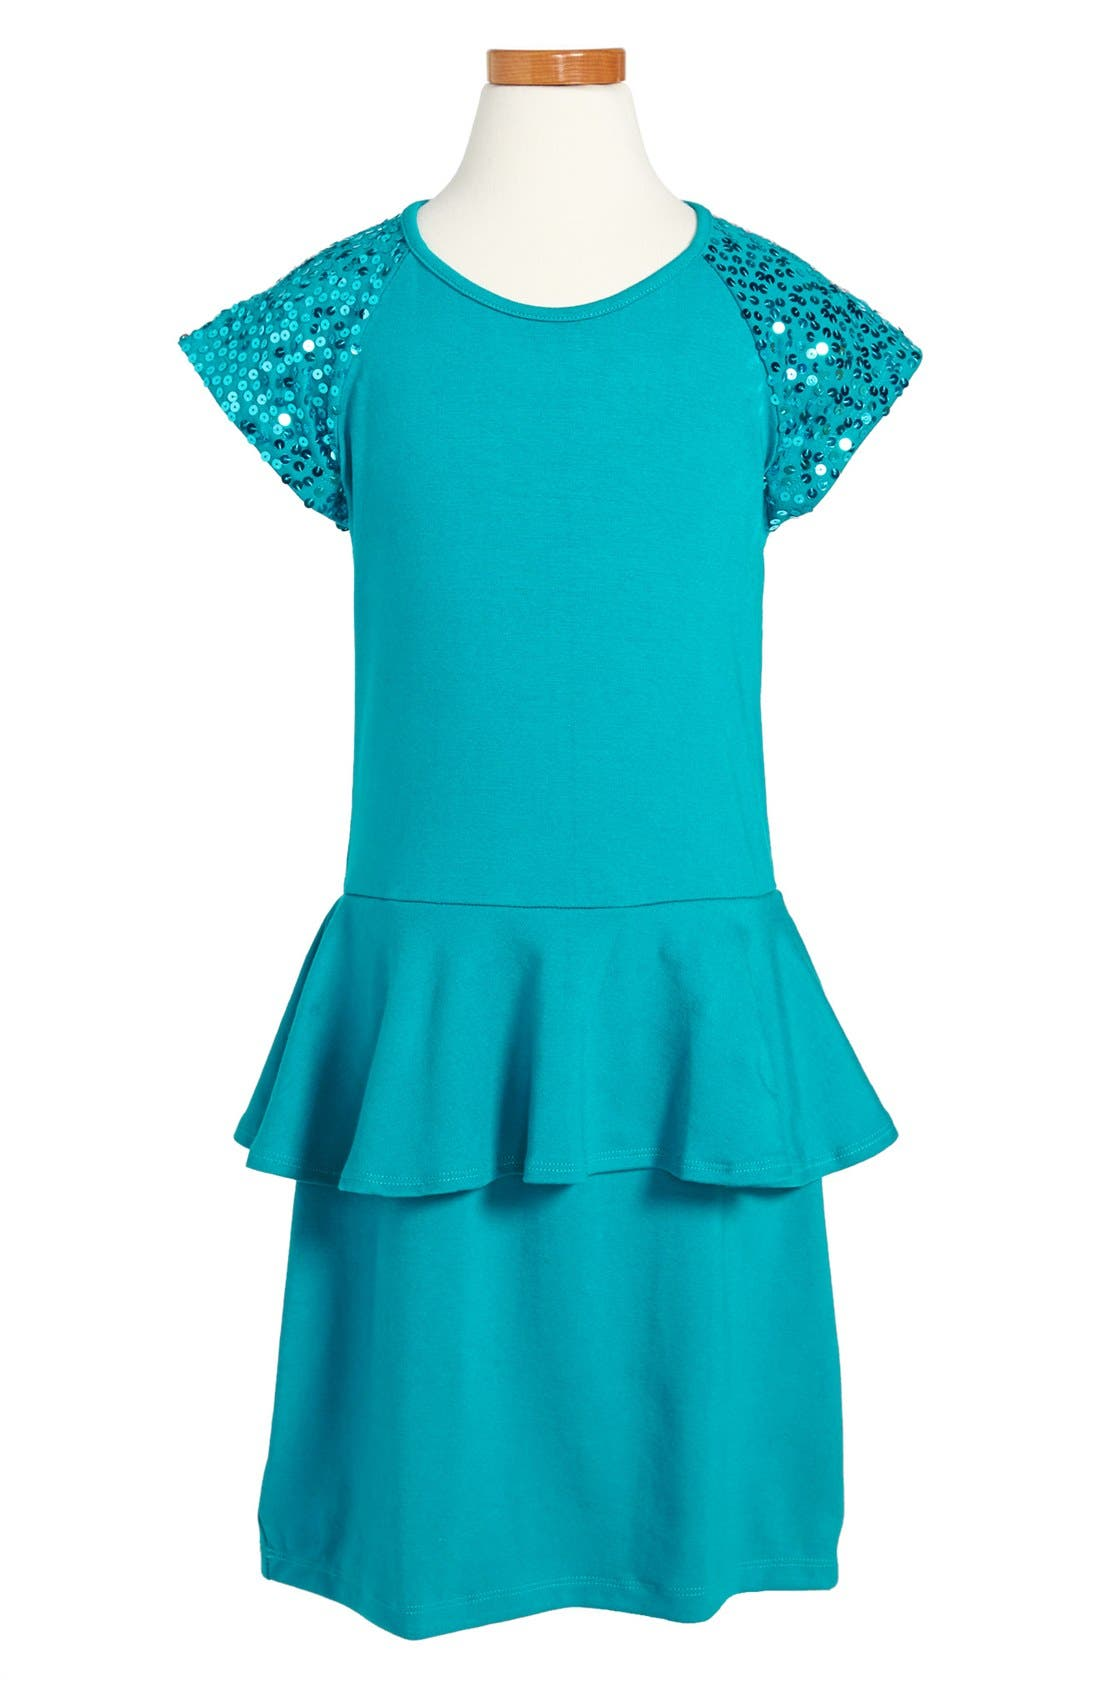 Main Image - Flowers by Zoe Sequin Sleeve Peplum Dress (Big Girls)